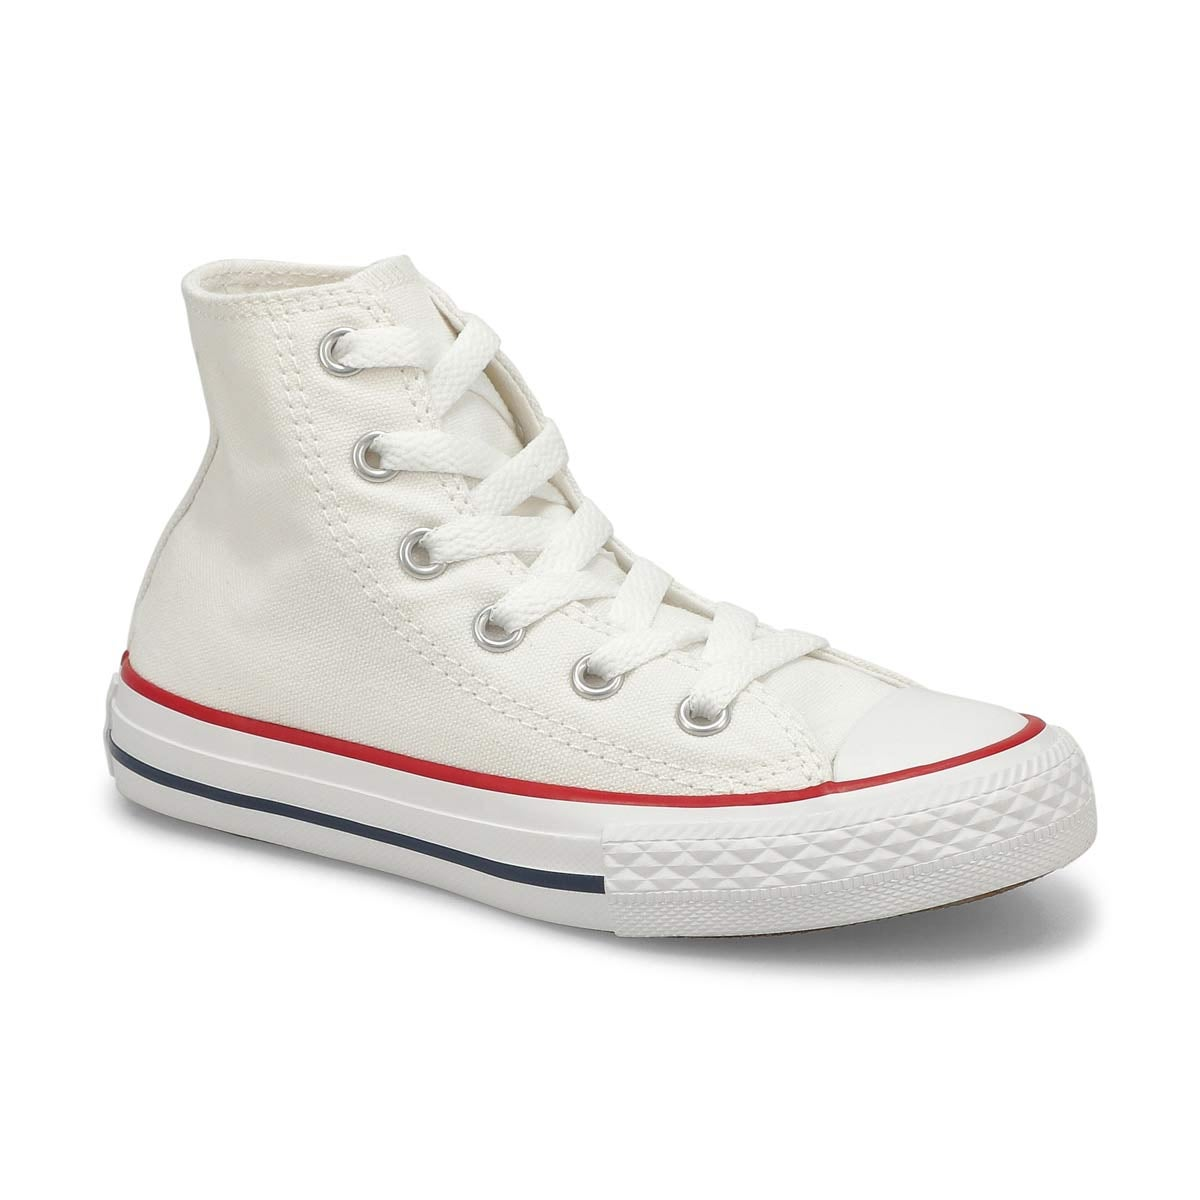 Kids' CHUCK TAYLOR ALL STAR white sneakers